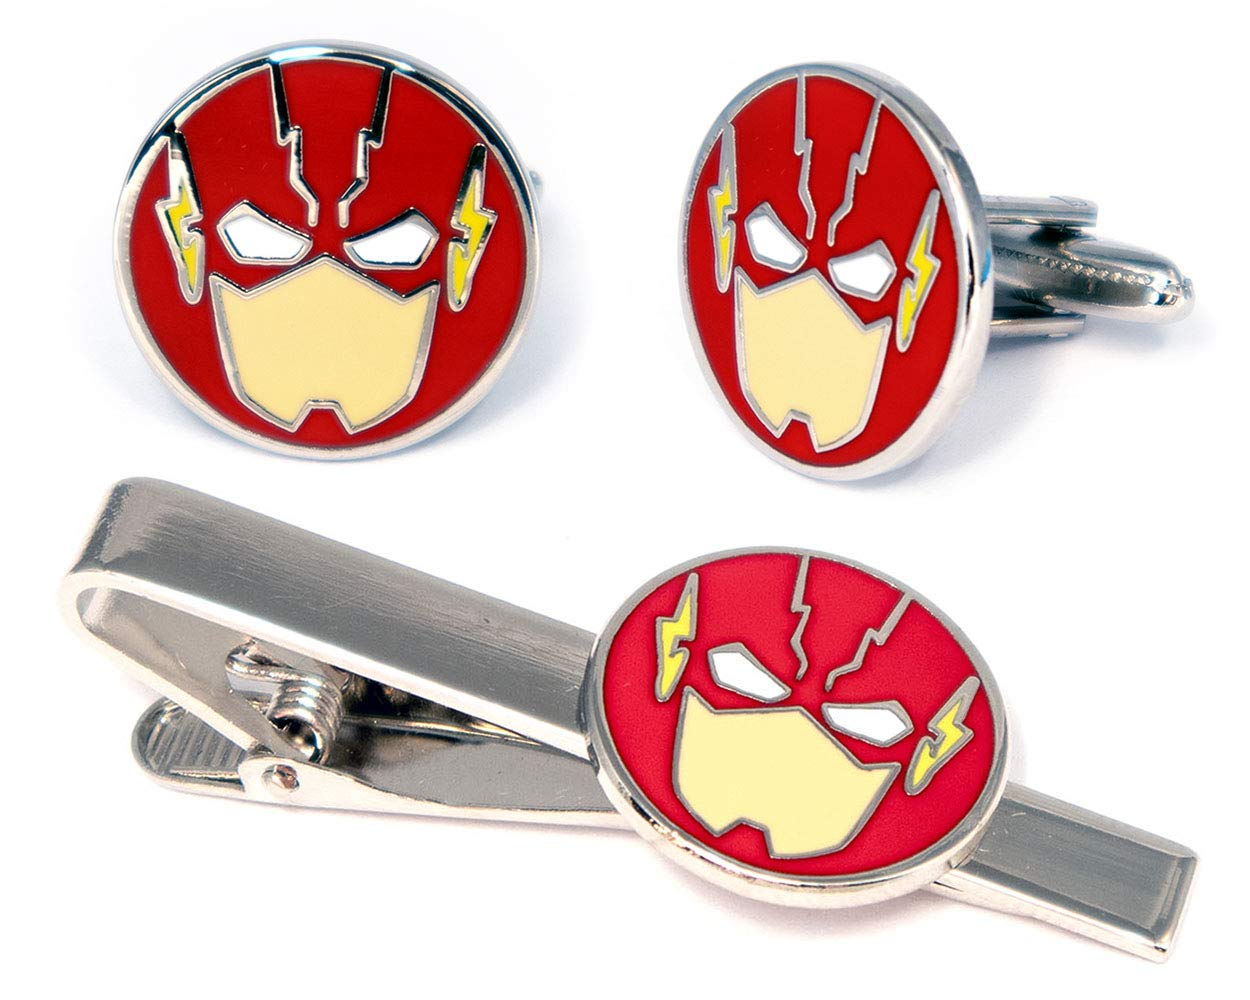 SharedImagination Flash Tie Clip, The Justice League Cufflinks, DC Comics Jewelry, Minimalist Batman vs Superman Cuff Links Link, Marvel Avengers Tie Tack, Groomsmen Gift Wedding Party